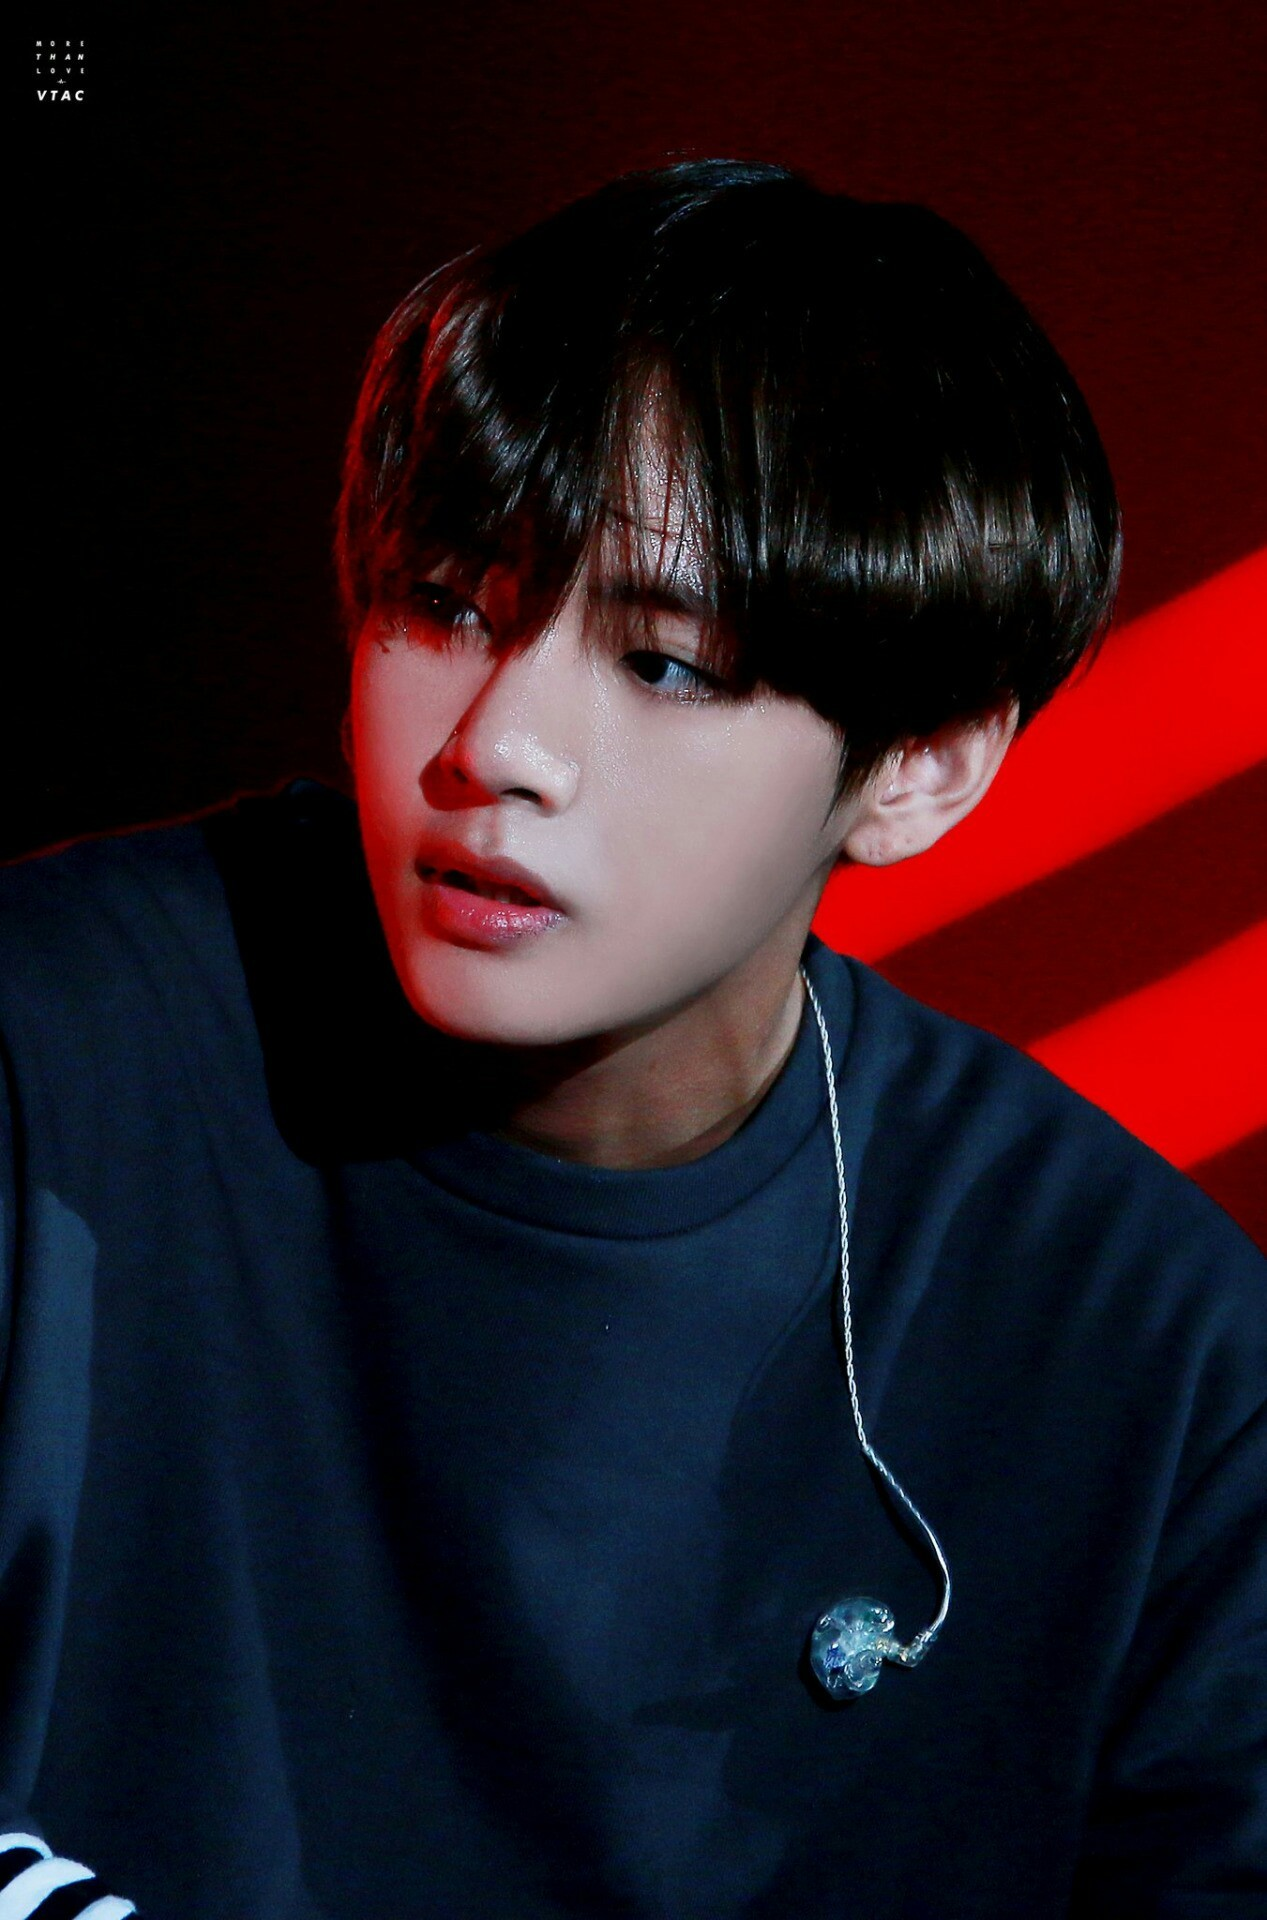 Aesthetic Wallpaper Bts Taehyung Taehyung Black 361886 Hd Wallpaper Backgrounds Download